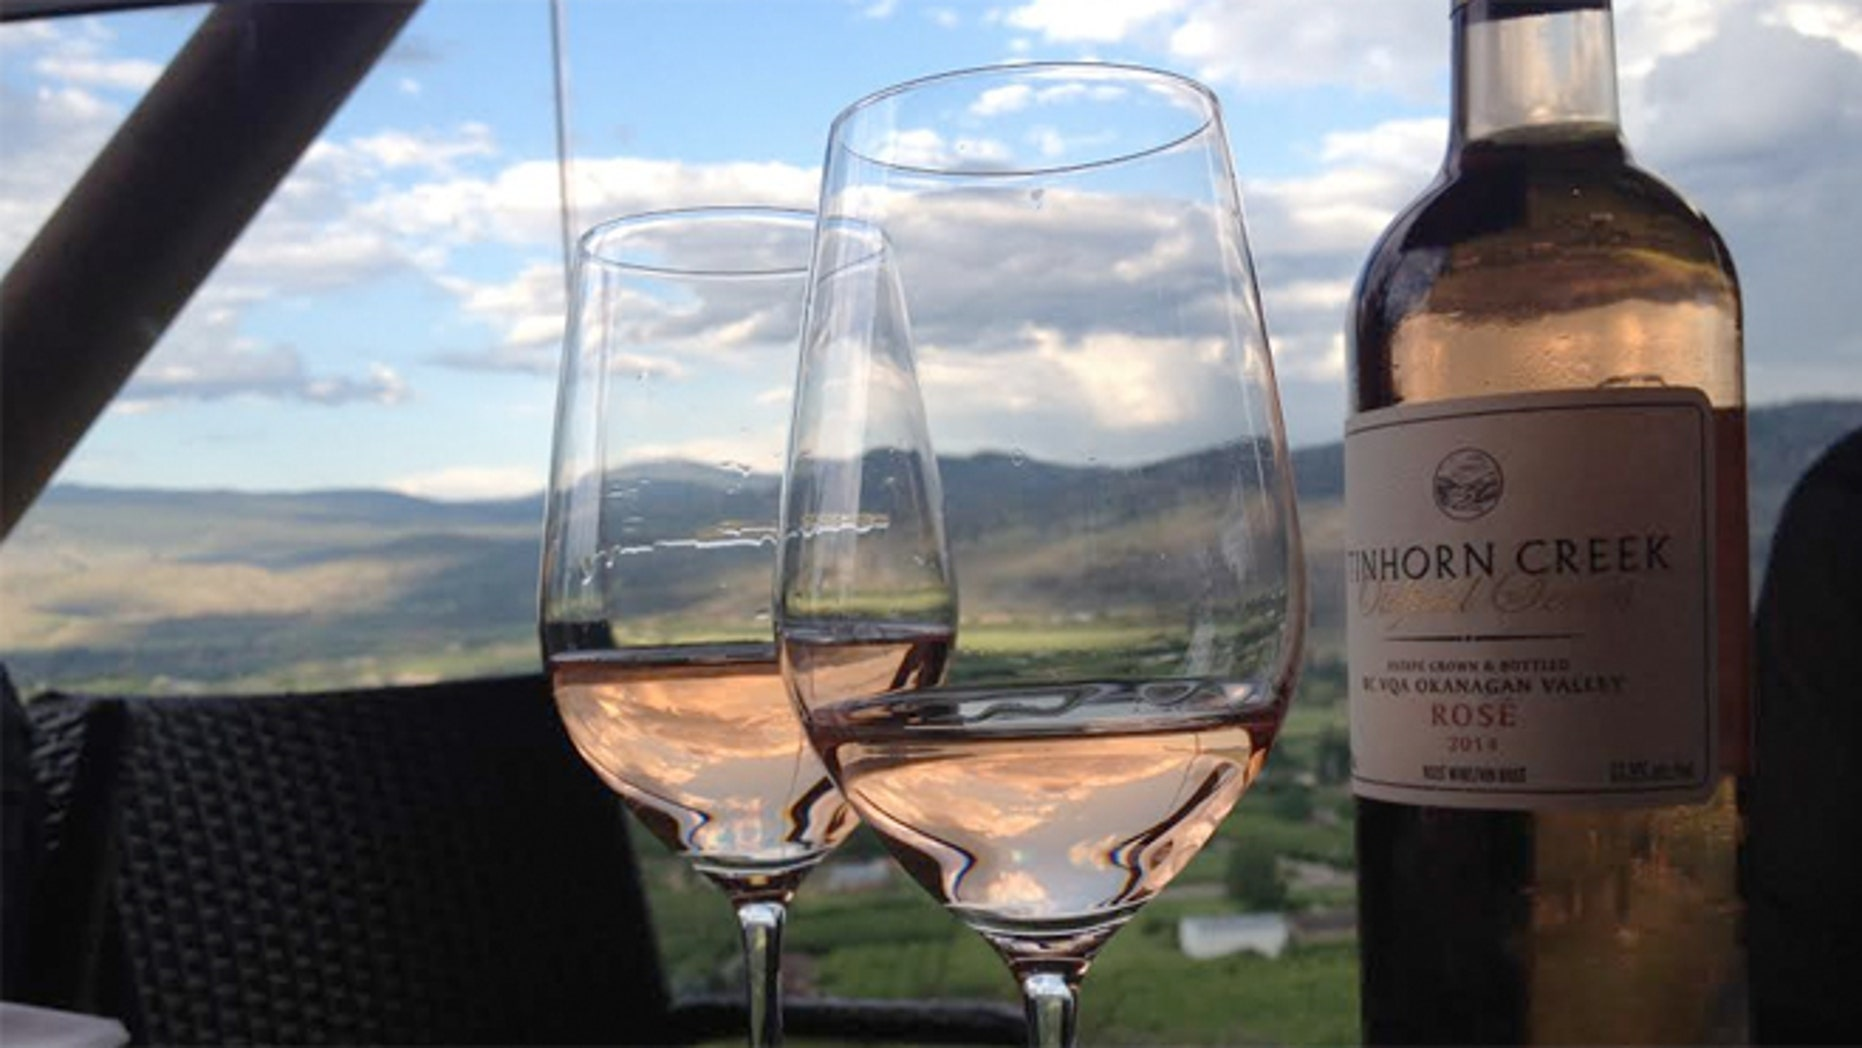 The Okanagan Valley has about 100 miles of microclimates and about 80 varietals of grapes.